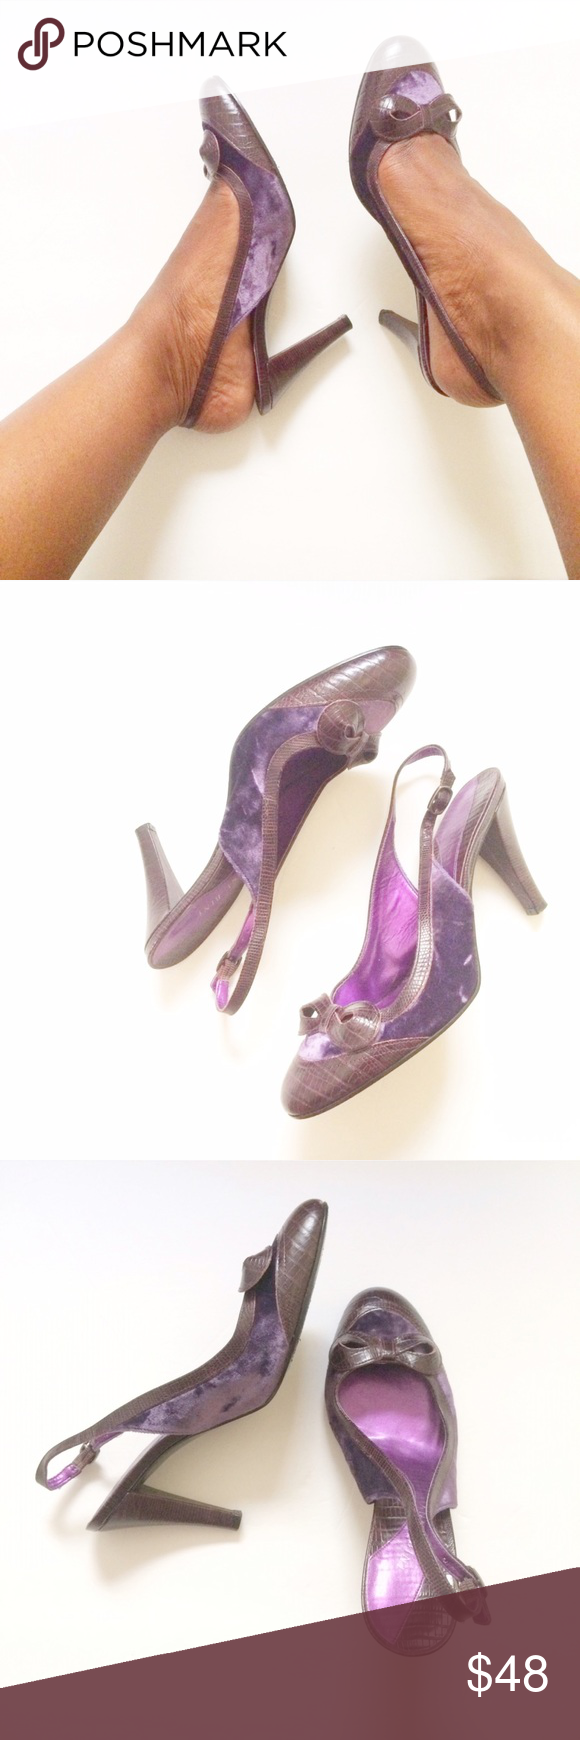 Purple Velvet + Leather Slingback Heels w/ Bow Purple crushed velvet and chocolate brown crocodile inspired leather work perfectly together on these slingbacks. The added detail--the beautiful bow on the toe. Size 8M. Heels: 3in. Brand: Gianni Bini. Listed for exposure. Vince Camuto Shoes Heels